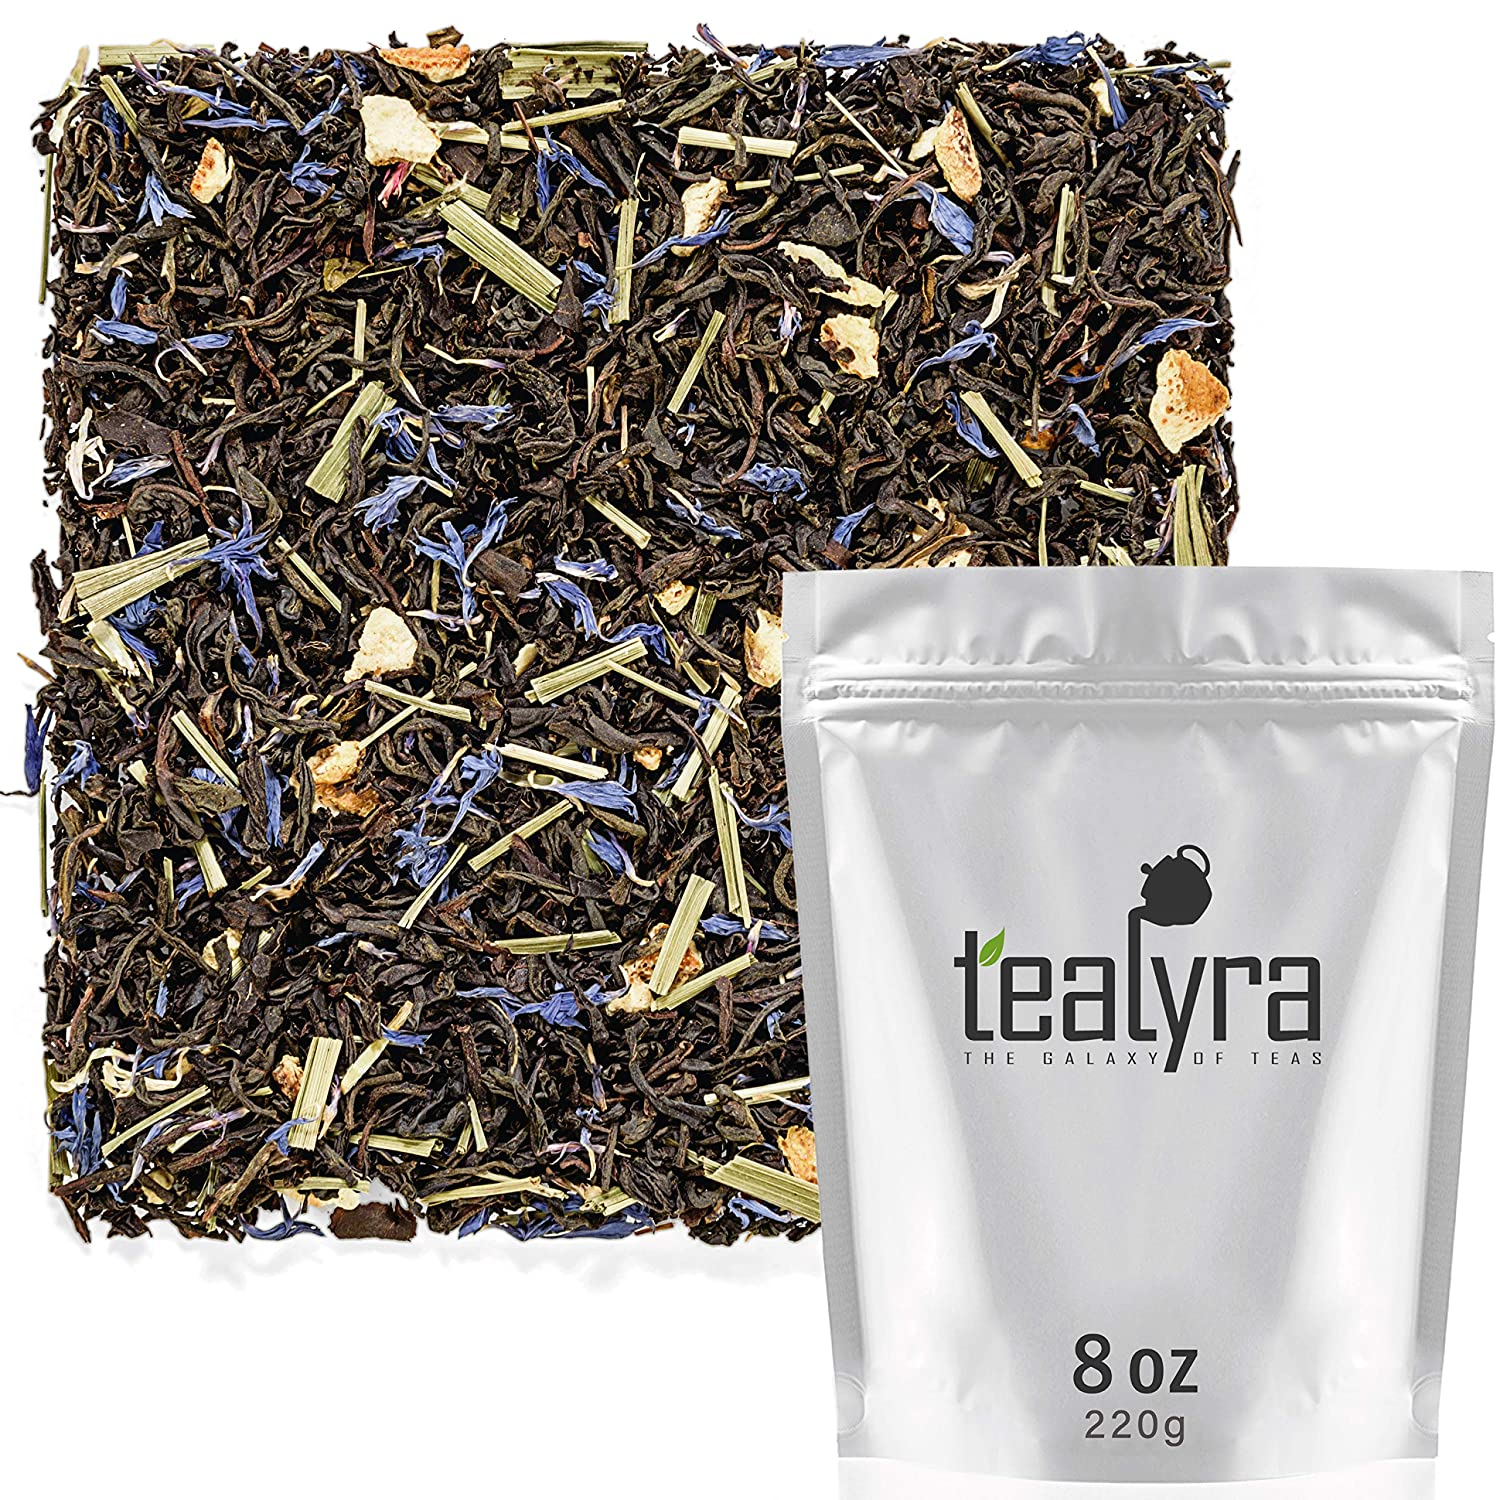 Tealyra - Russian Earl Grey - Orange and Lemongrass - Black Tea - Loose Leaf Tea Blend - Medium Caffeine - 222g (8-ounce)